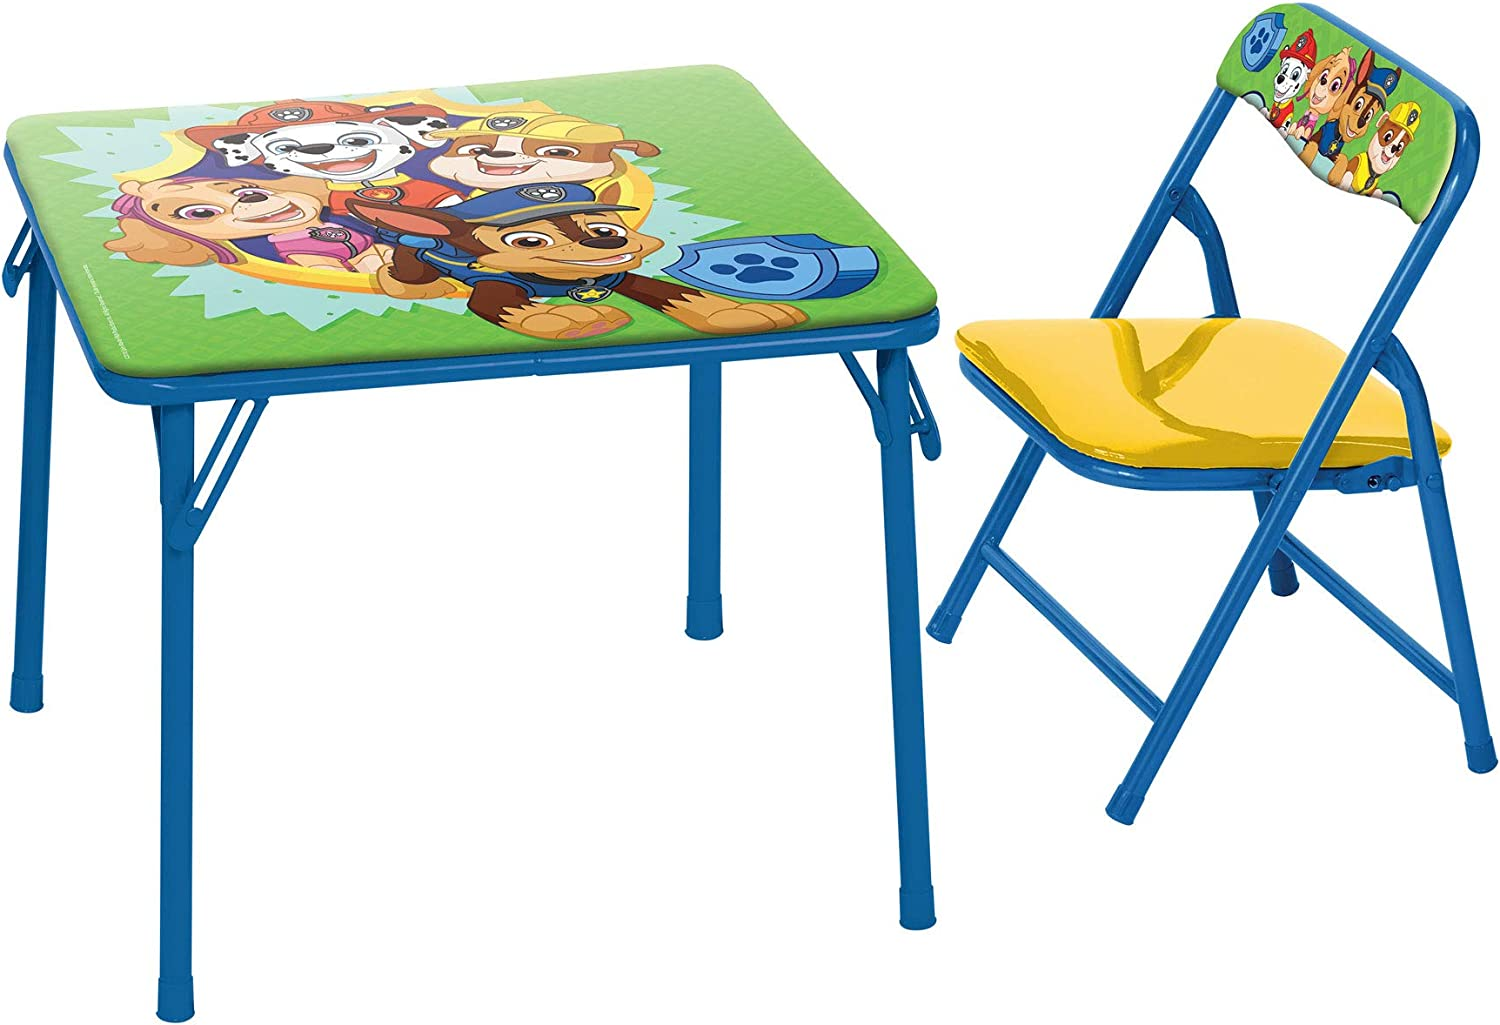 Padded Chairs Paw Patrol Junior Table /& Chair Set Folding Table